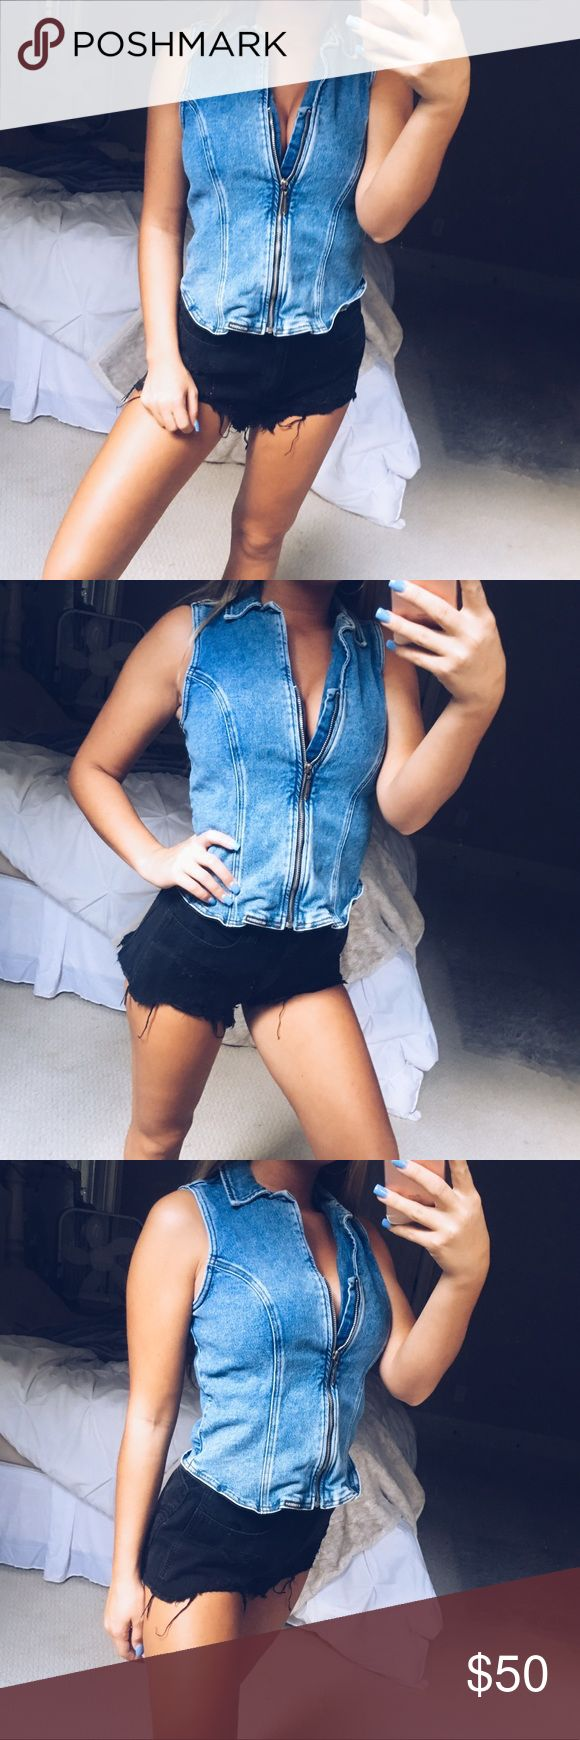 denim zip up vest gorgeous denim zip up vest from Harley Davidson. such an edgy and flattering piece! it can be worn as a top zipped up, or unzipped as a vest. super versatile and stylish. size 6, fits like a small or medium. in perfect condition 🥀 Harley-Davidson Jackets & Coats Vests